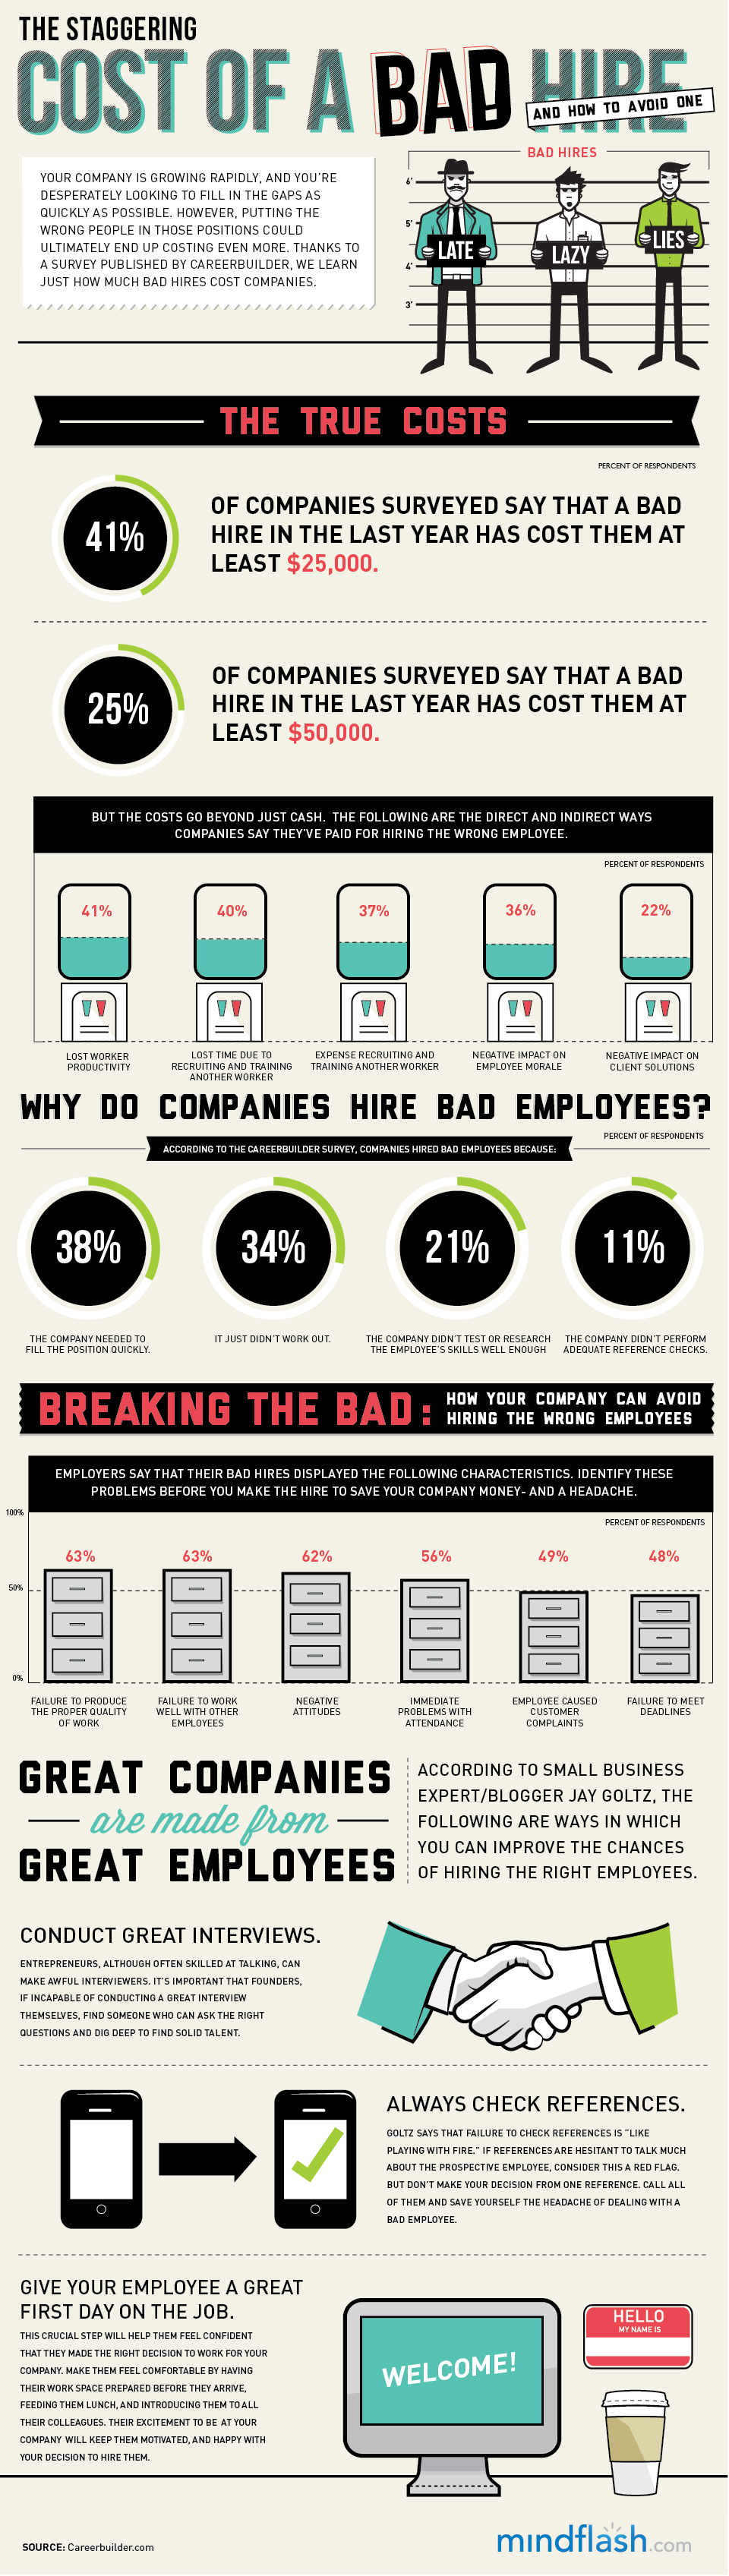 Costs of a Bad Employee